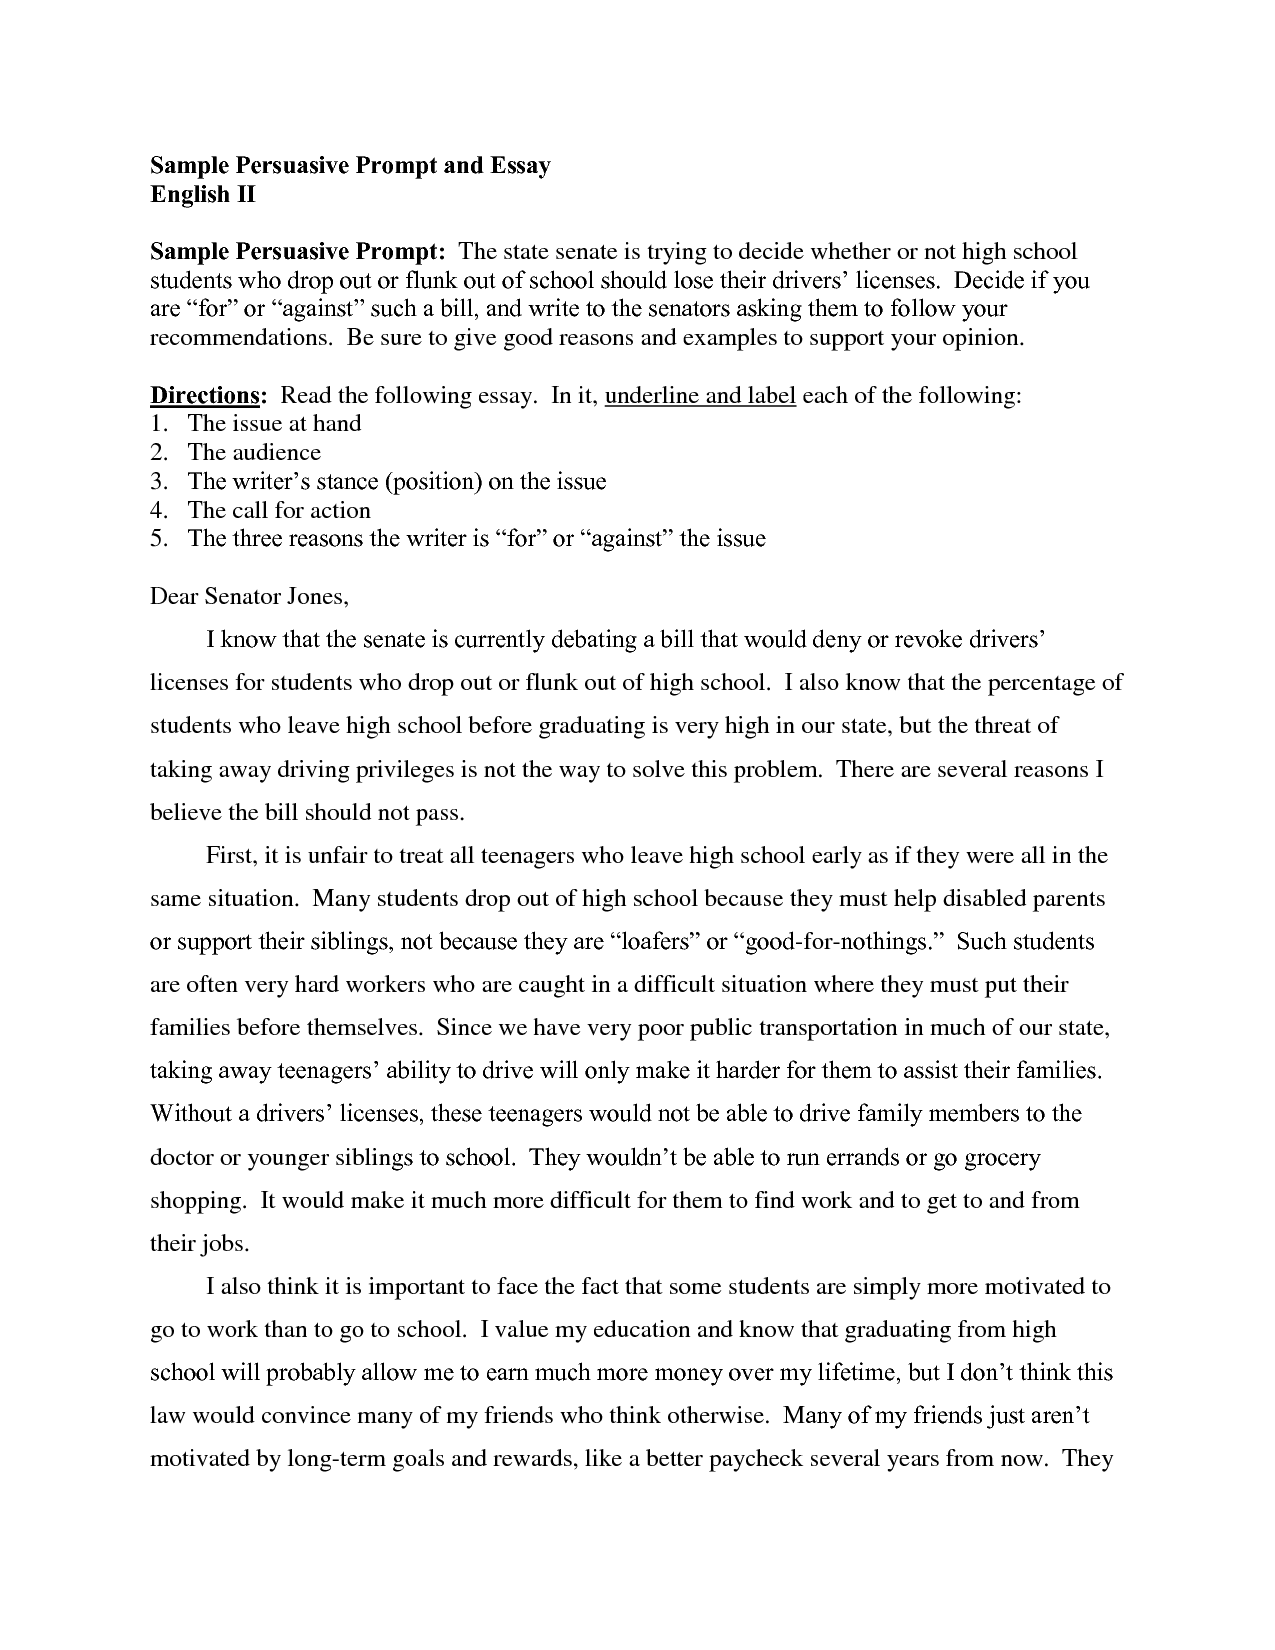 018 Research Papergh School Essays Persuasive Essay Sample About Graduation Education Day Sports Lifeghschool Dropouts And College Police Brutality Experiences Students Memories Brave New World Marvelous High Paper Format For Senior Pdf Example Full